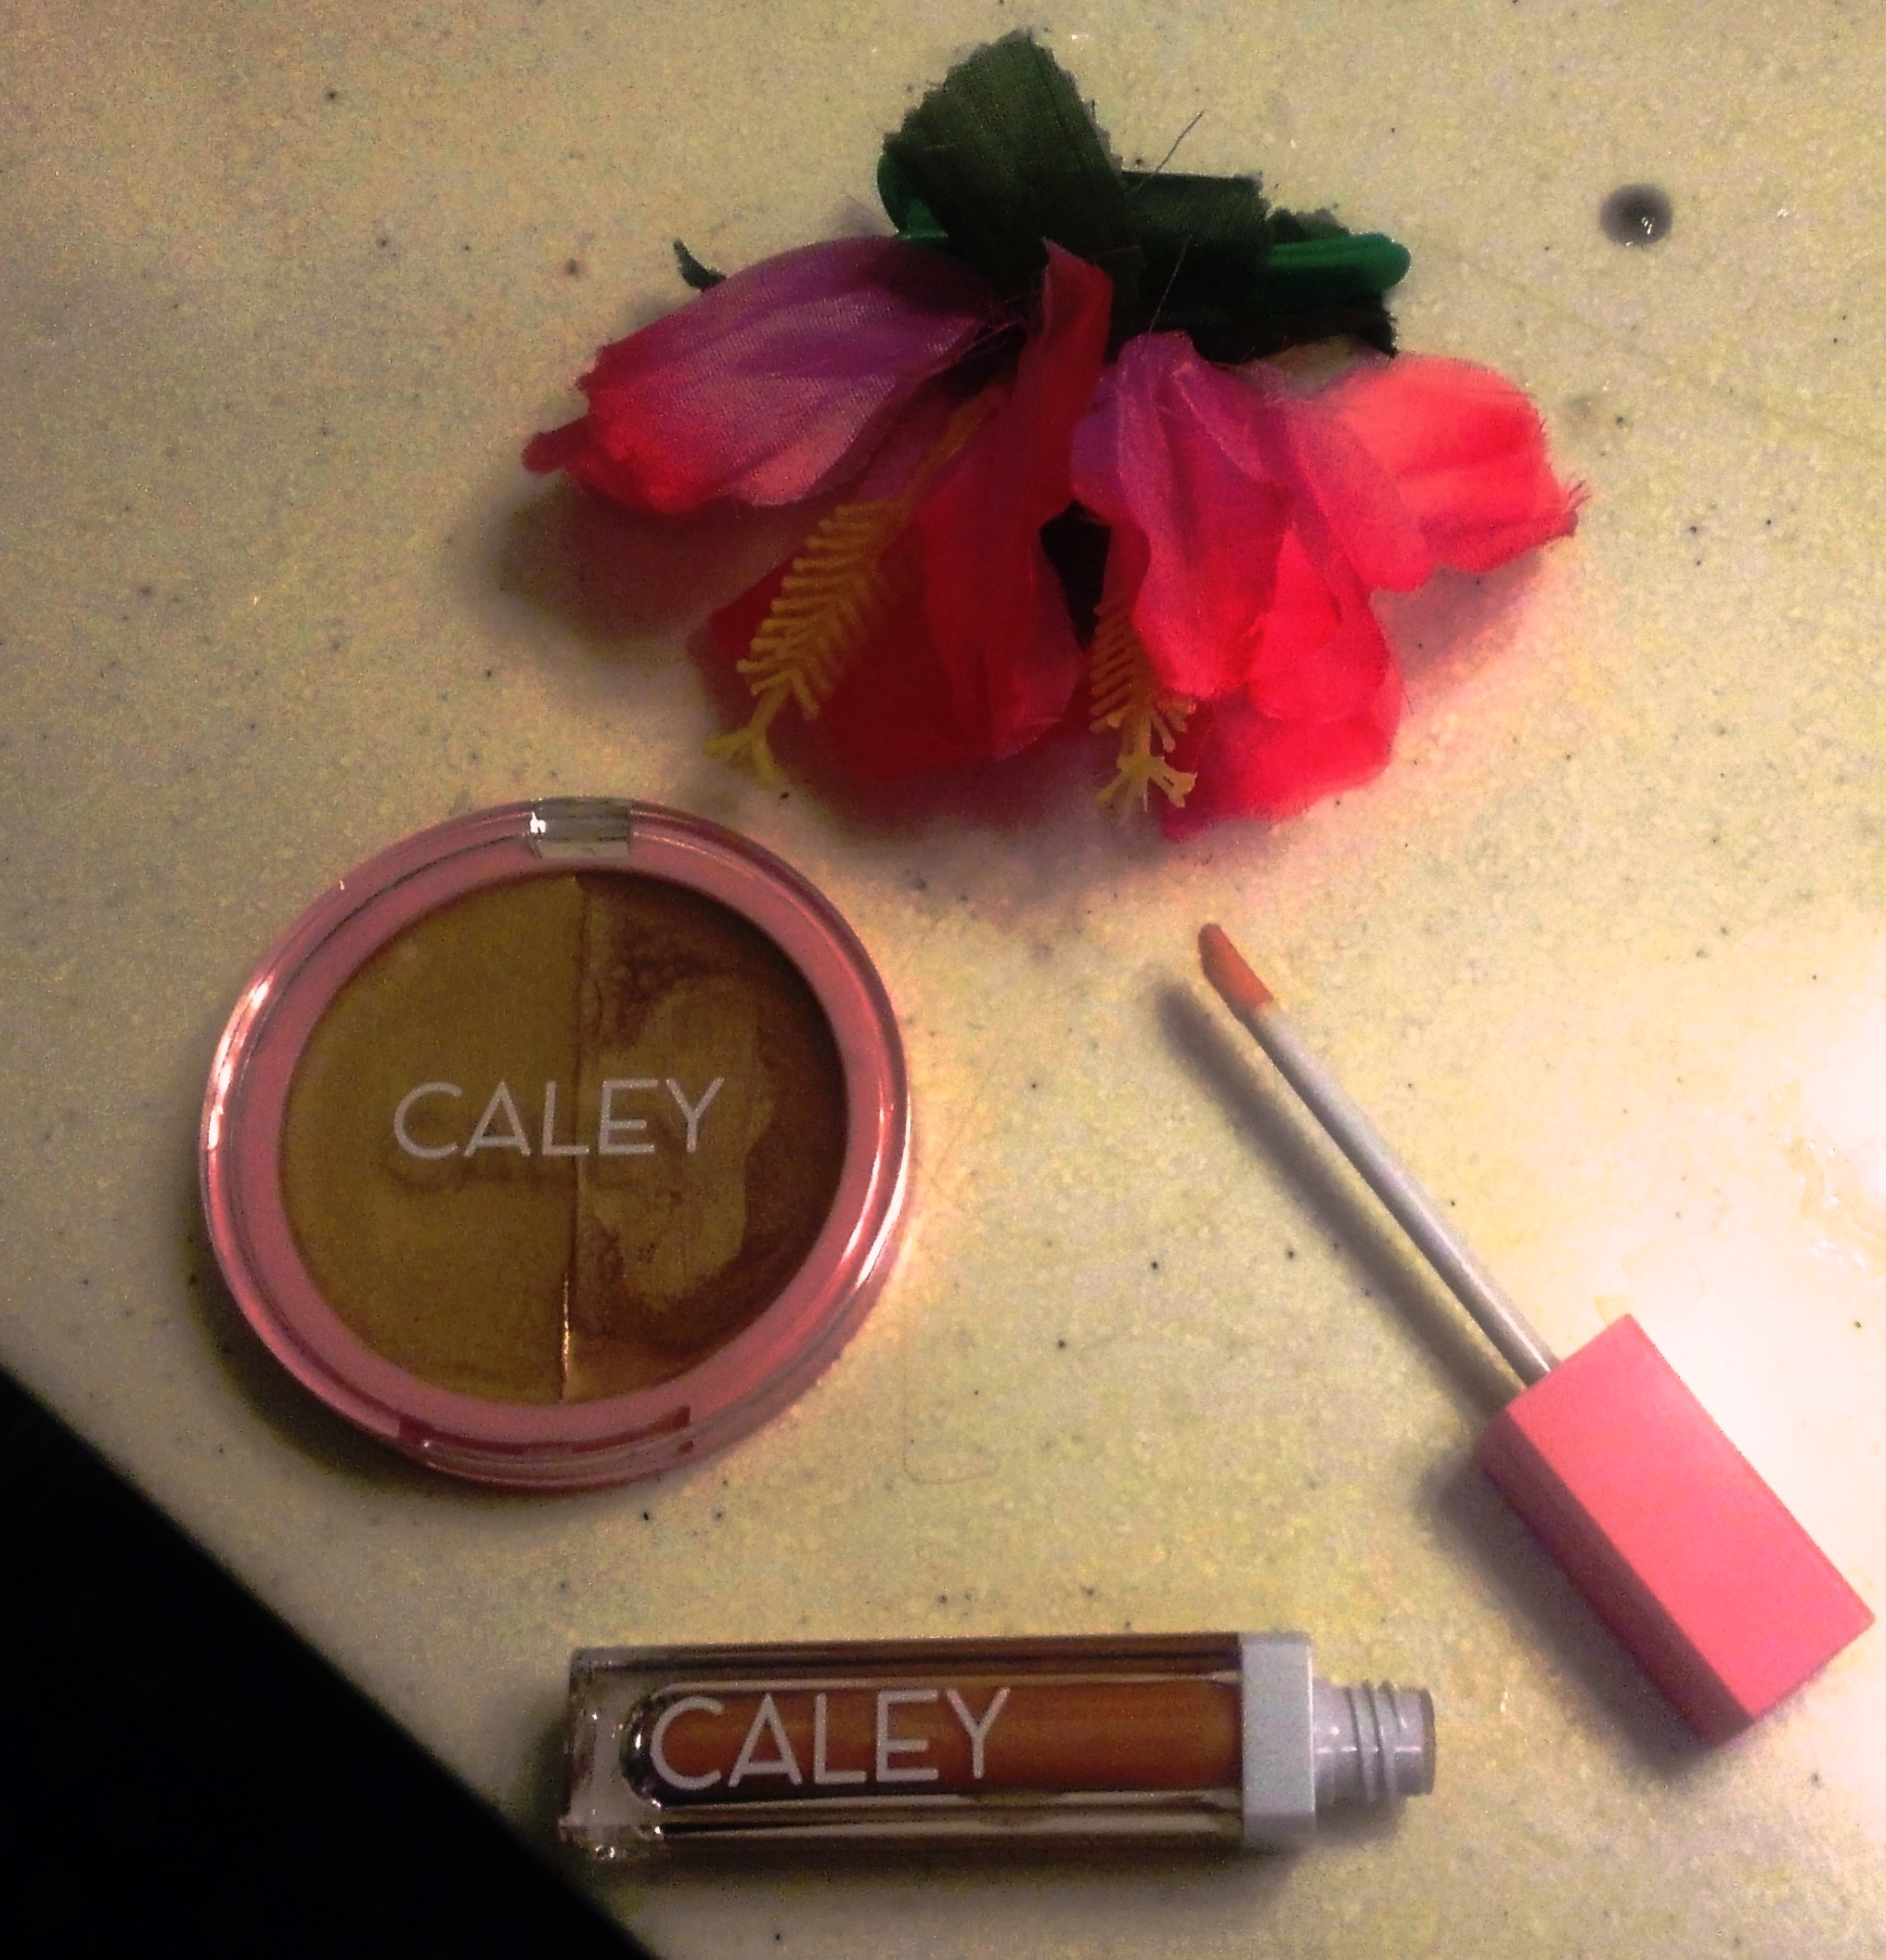 Caley clean cosmetics